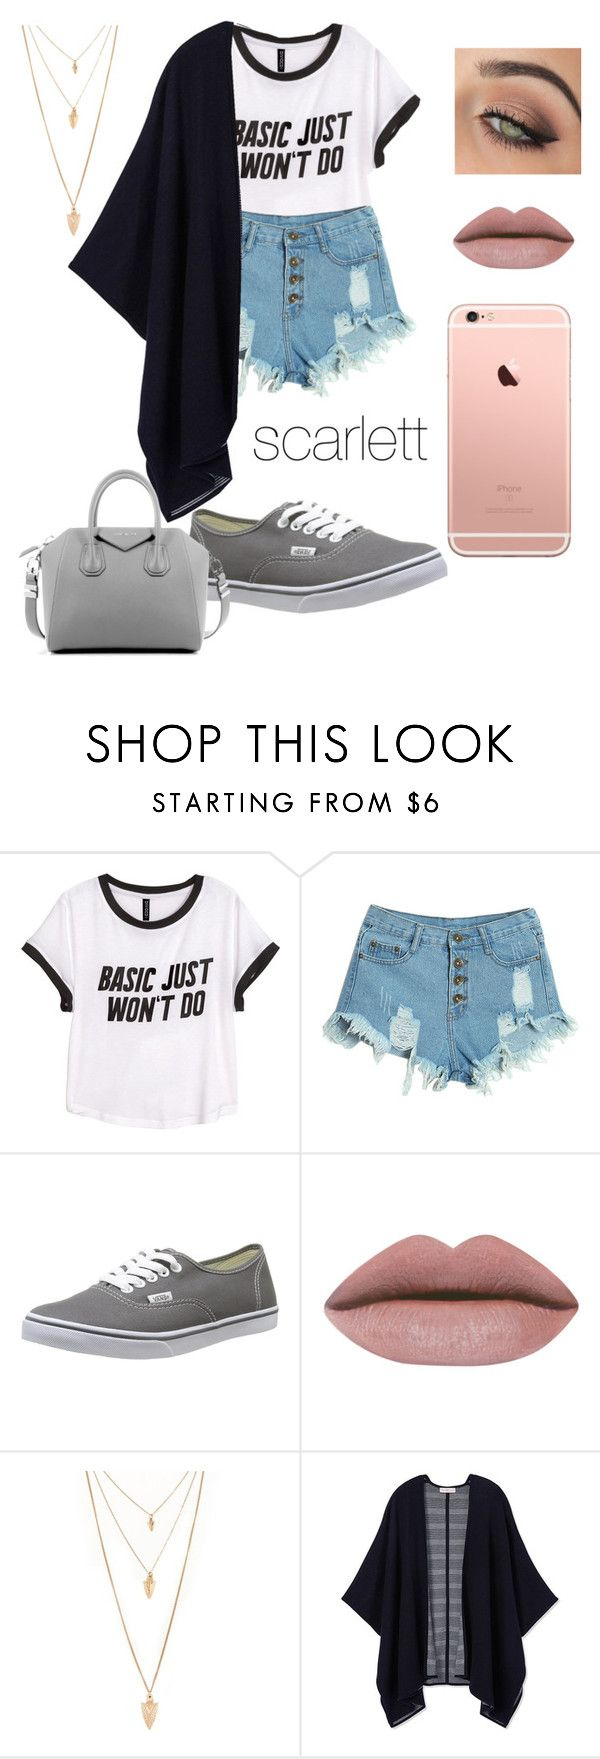 """wattpad story outfits"" by lauraederveen on Polyvore featuring H&M, WithChic, Vans, tarte, Forever 21, Tory Burch, Givenchy, women's clothing, women and female"